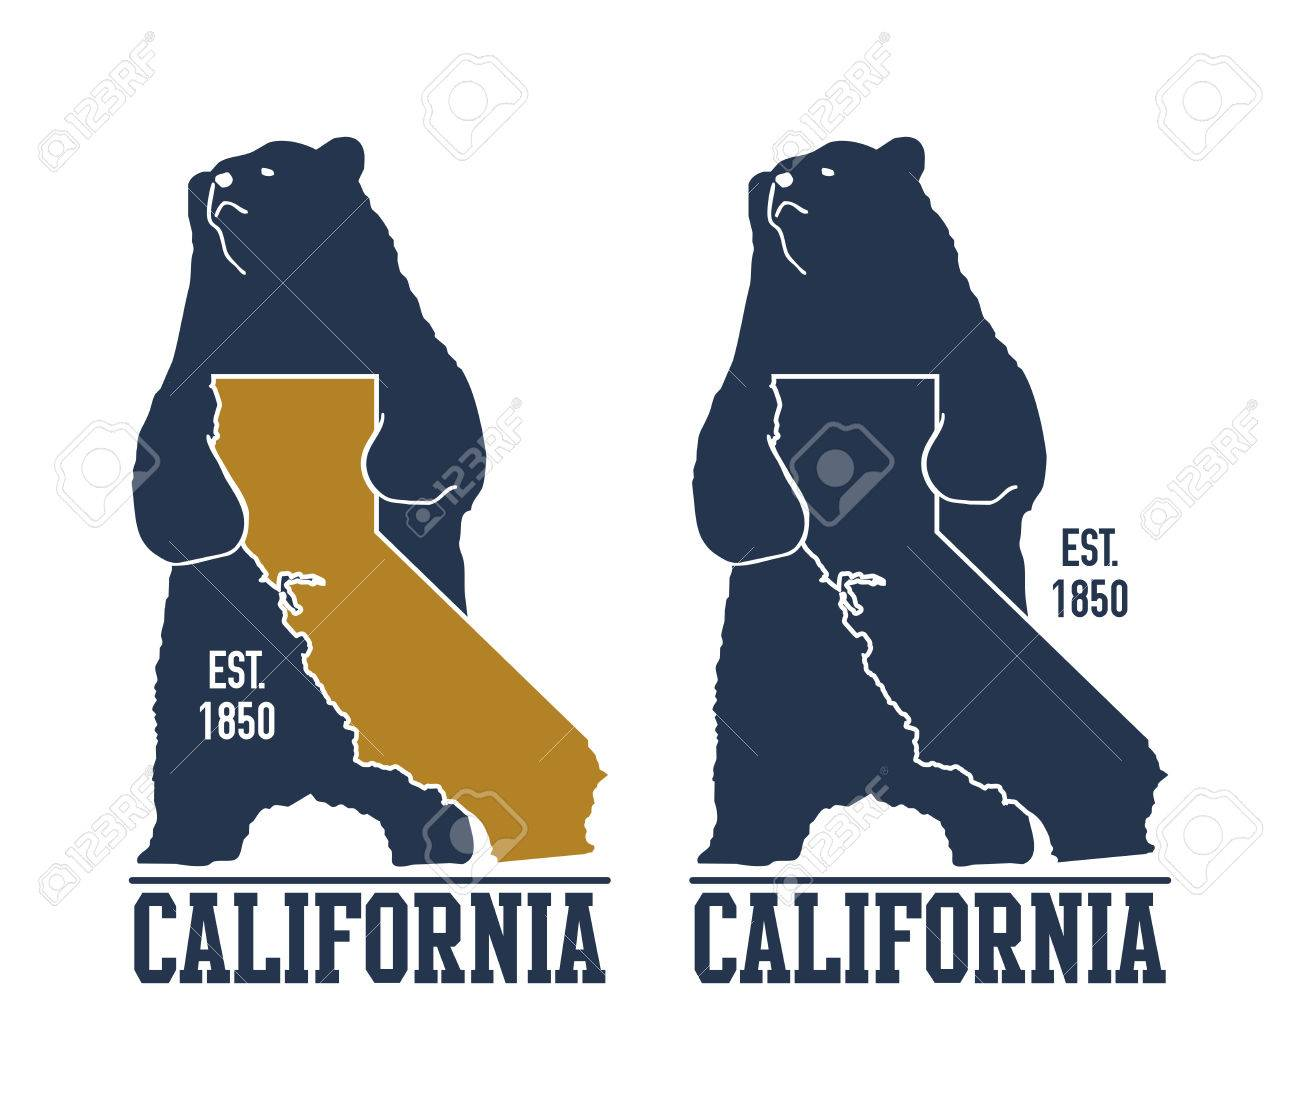 California T Shirt With Grizzly Bear Vector Illustration Stock